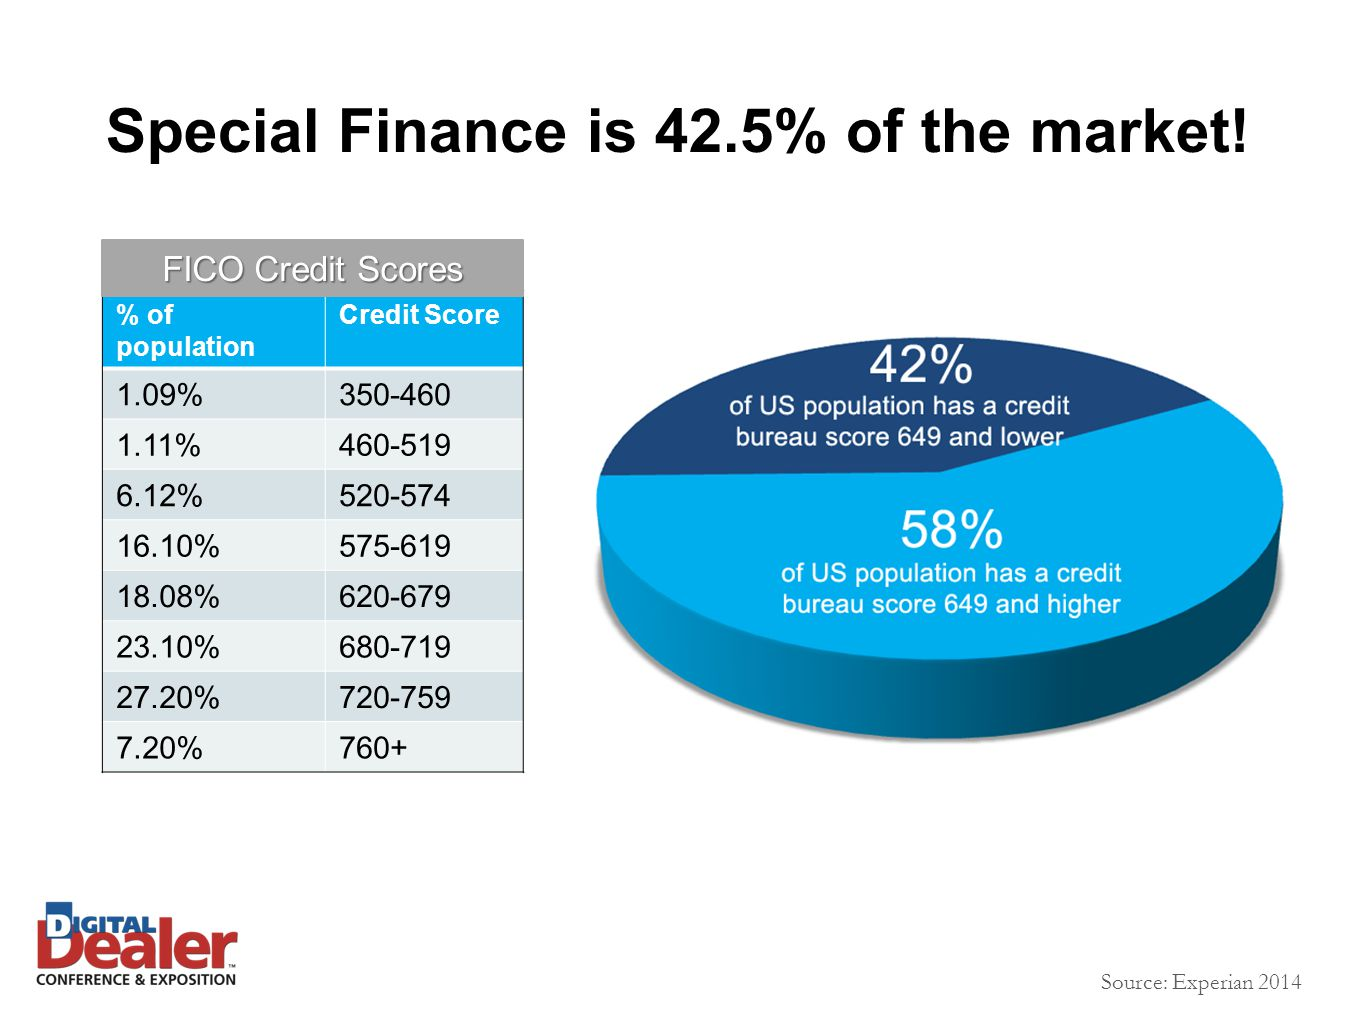 Special Finance is 42.5% of the market.